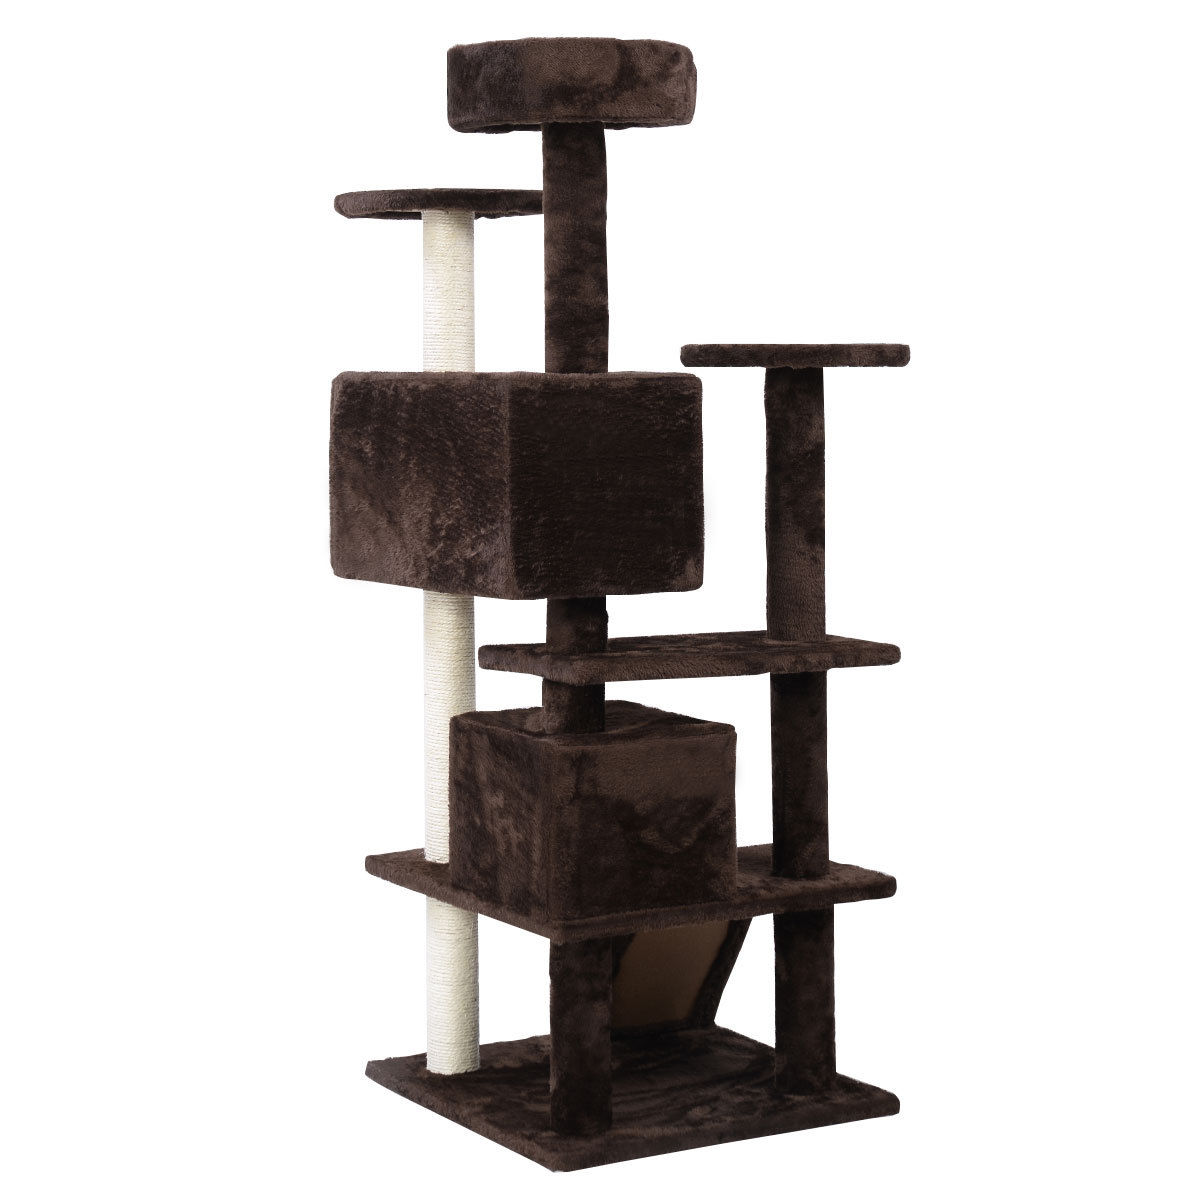 52 cat tree tower condo kitty pet house play safe toy. Black Bedroom Furniture Sets. Home Design Ideas